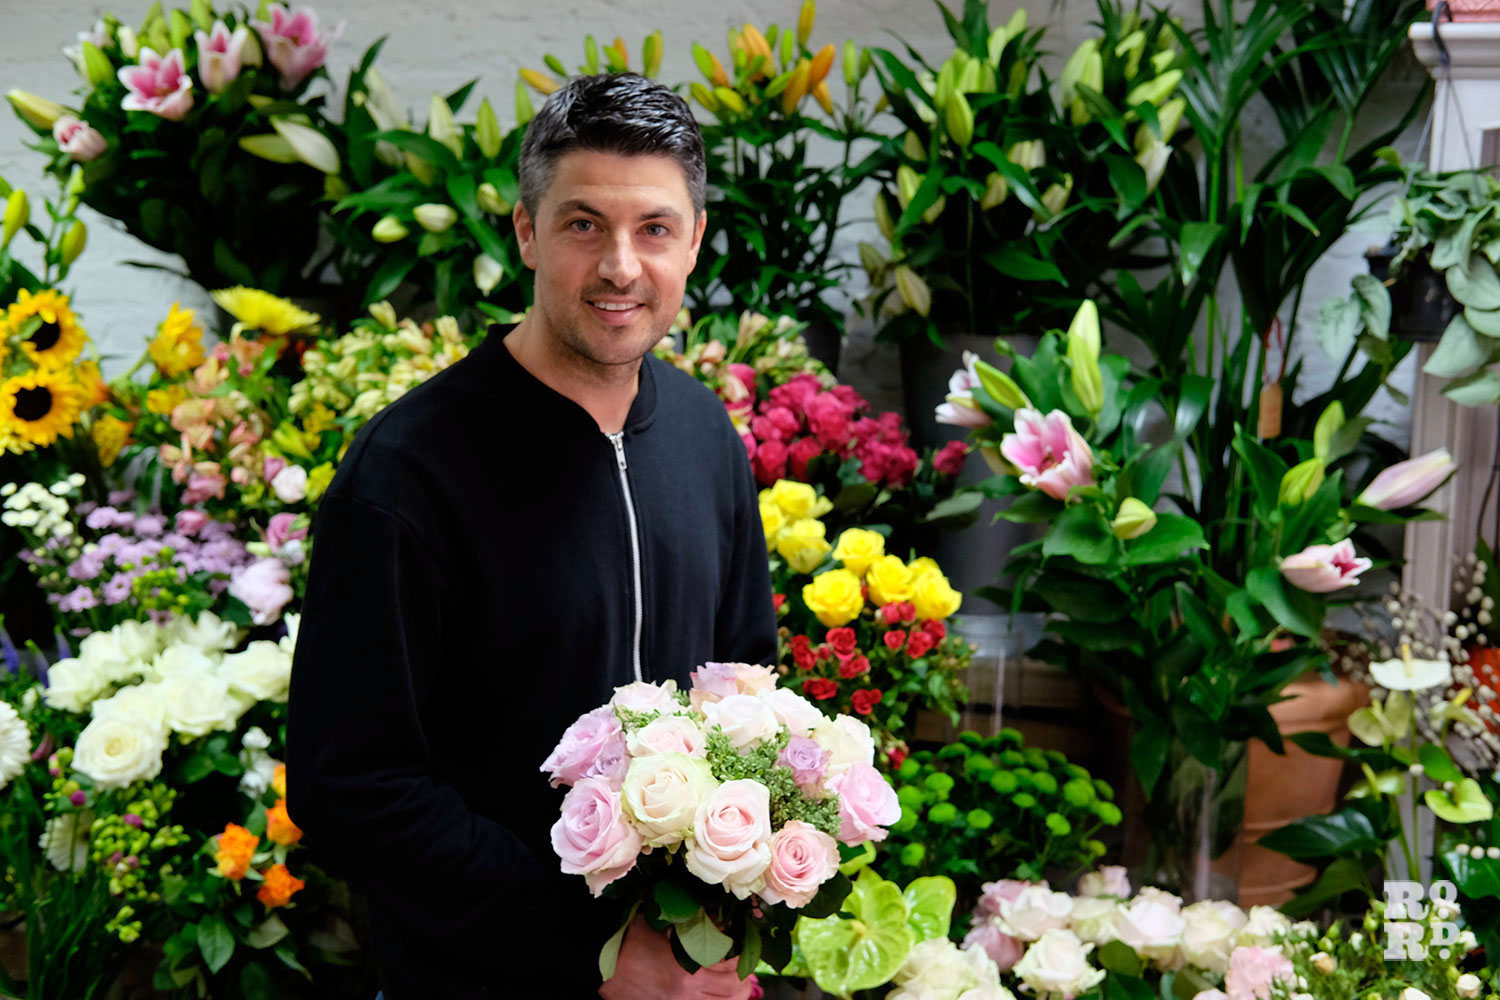 Male florist holding a bouquet of flowers in Denningtons florist, Roman Road, East London